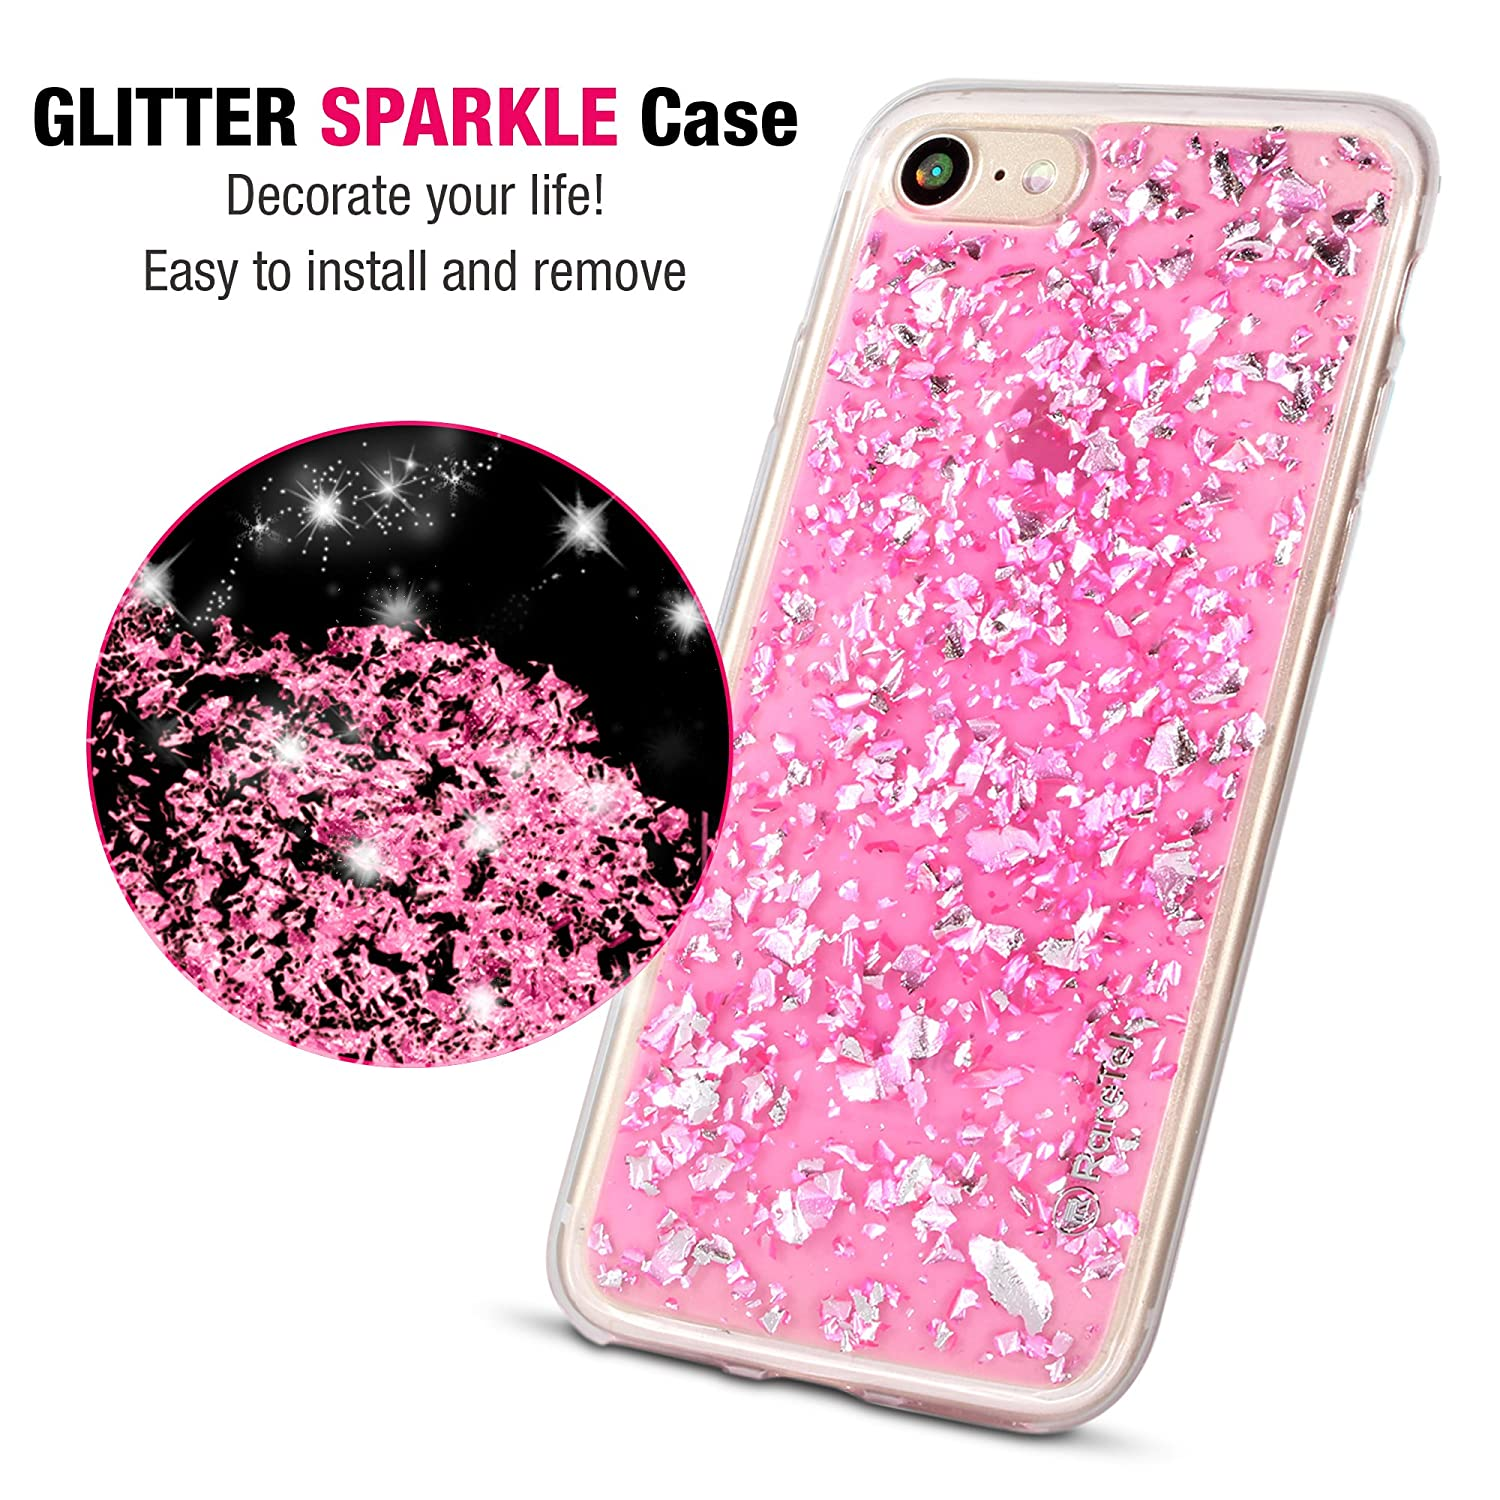 in another completely phone bling purikura want iphone decorate decor with case things i phones don purikeitai to cover if your my no stick like opportunity life t mobile do are did can you puri